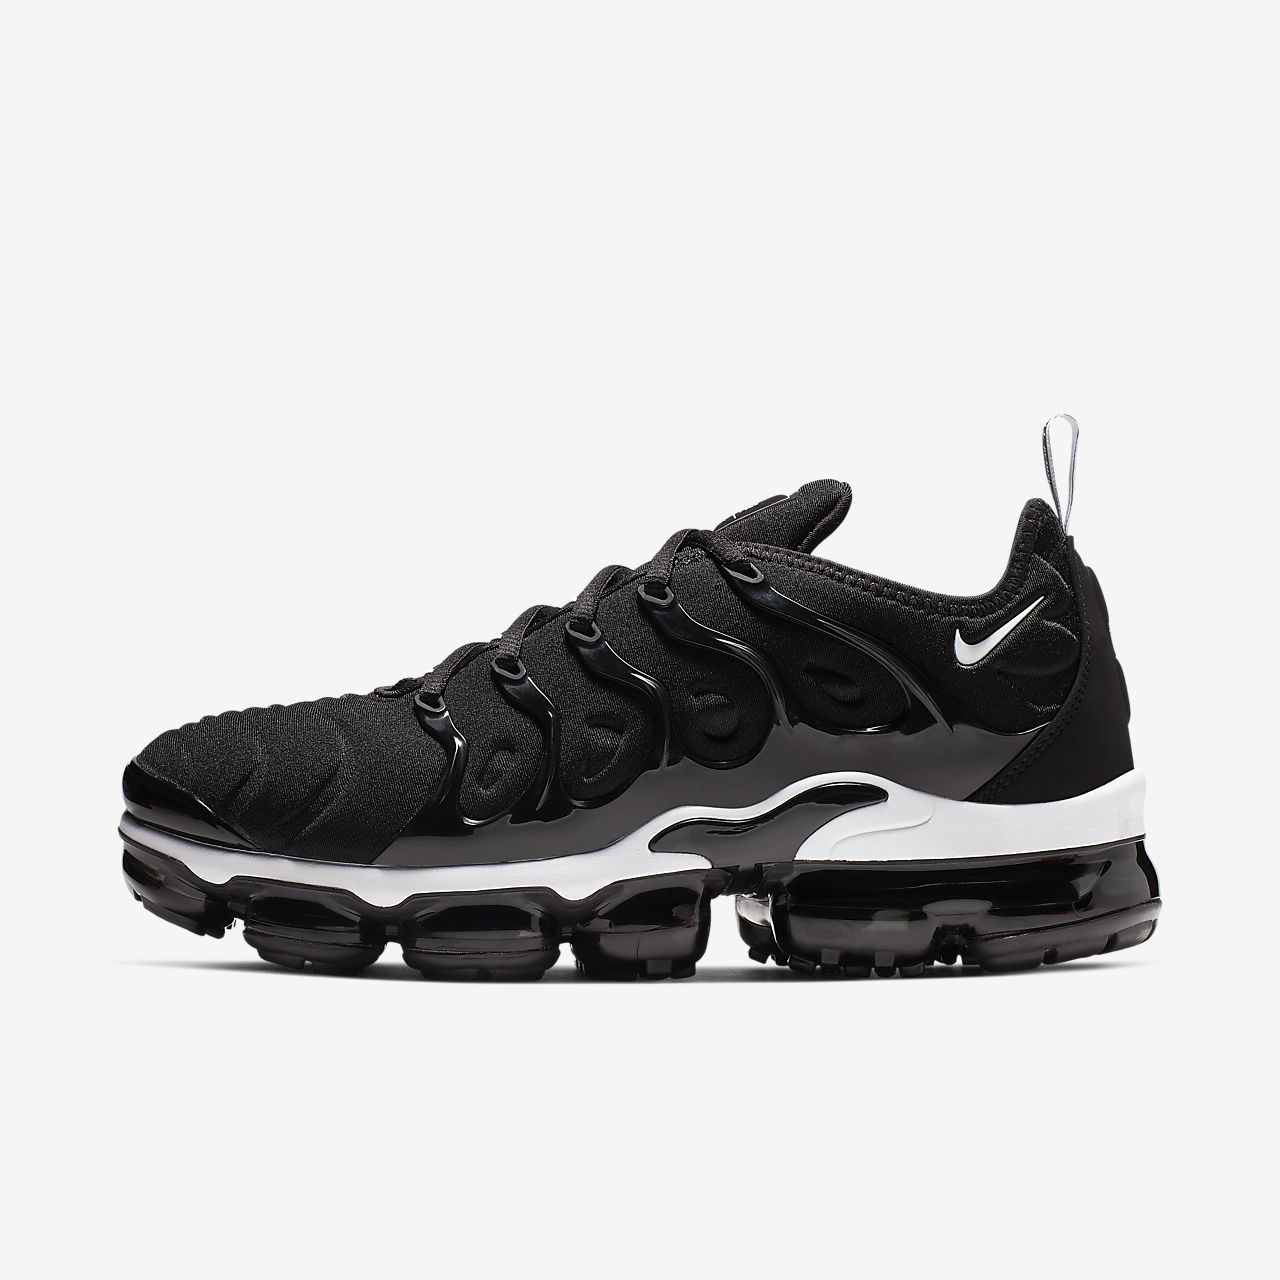 2761be8a3a127 Chaussure Nike Air VaporMax Plus pour Homme. Nike.com FR